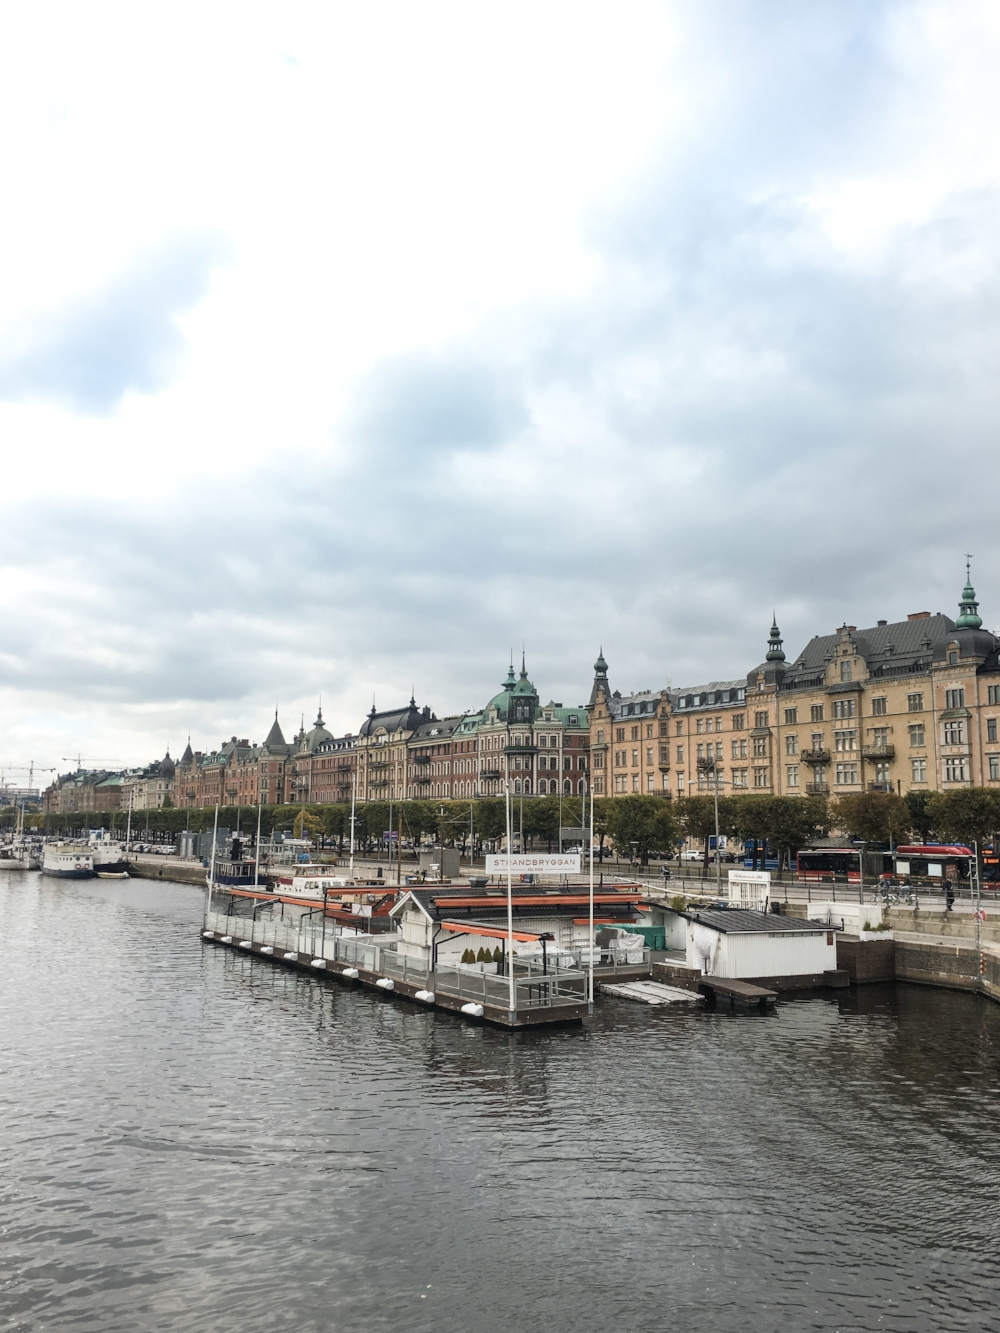 curio.trips.sweden.stockholm.river.waterfront.jpg